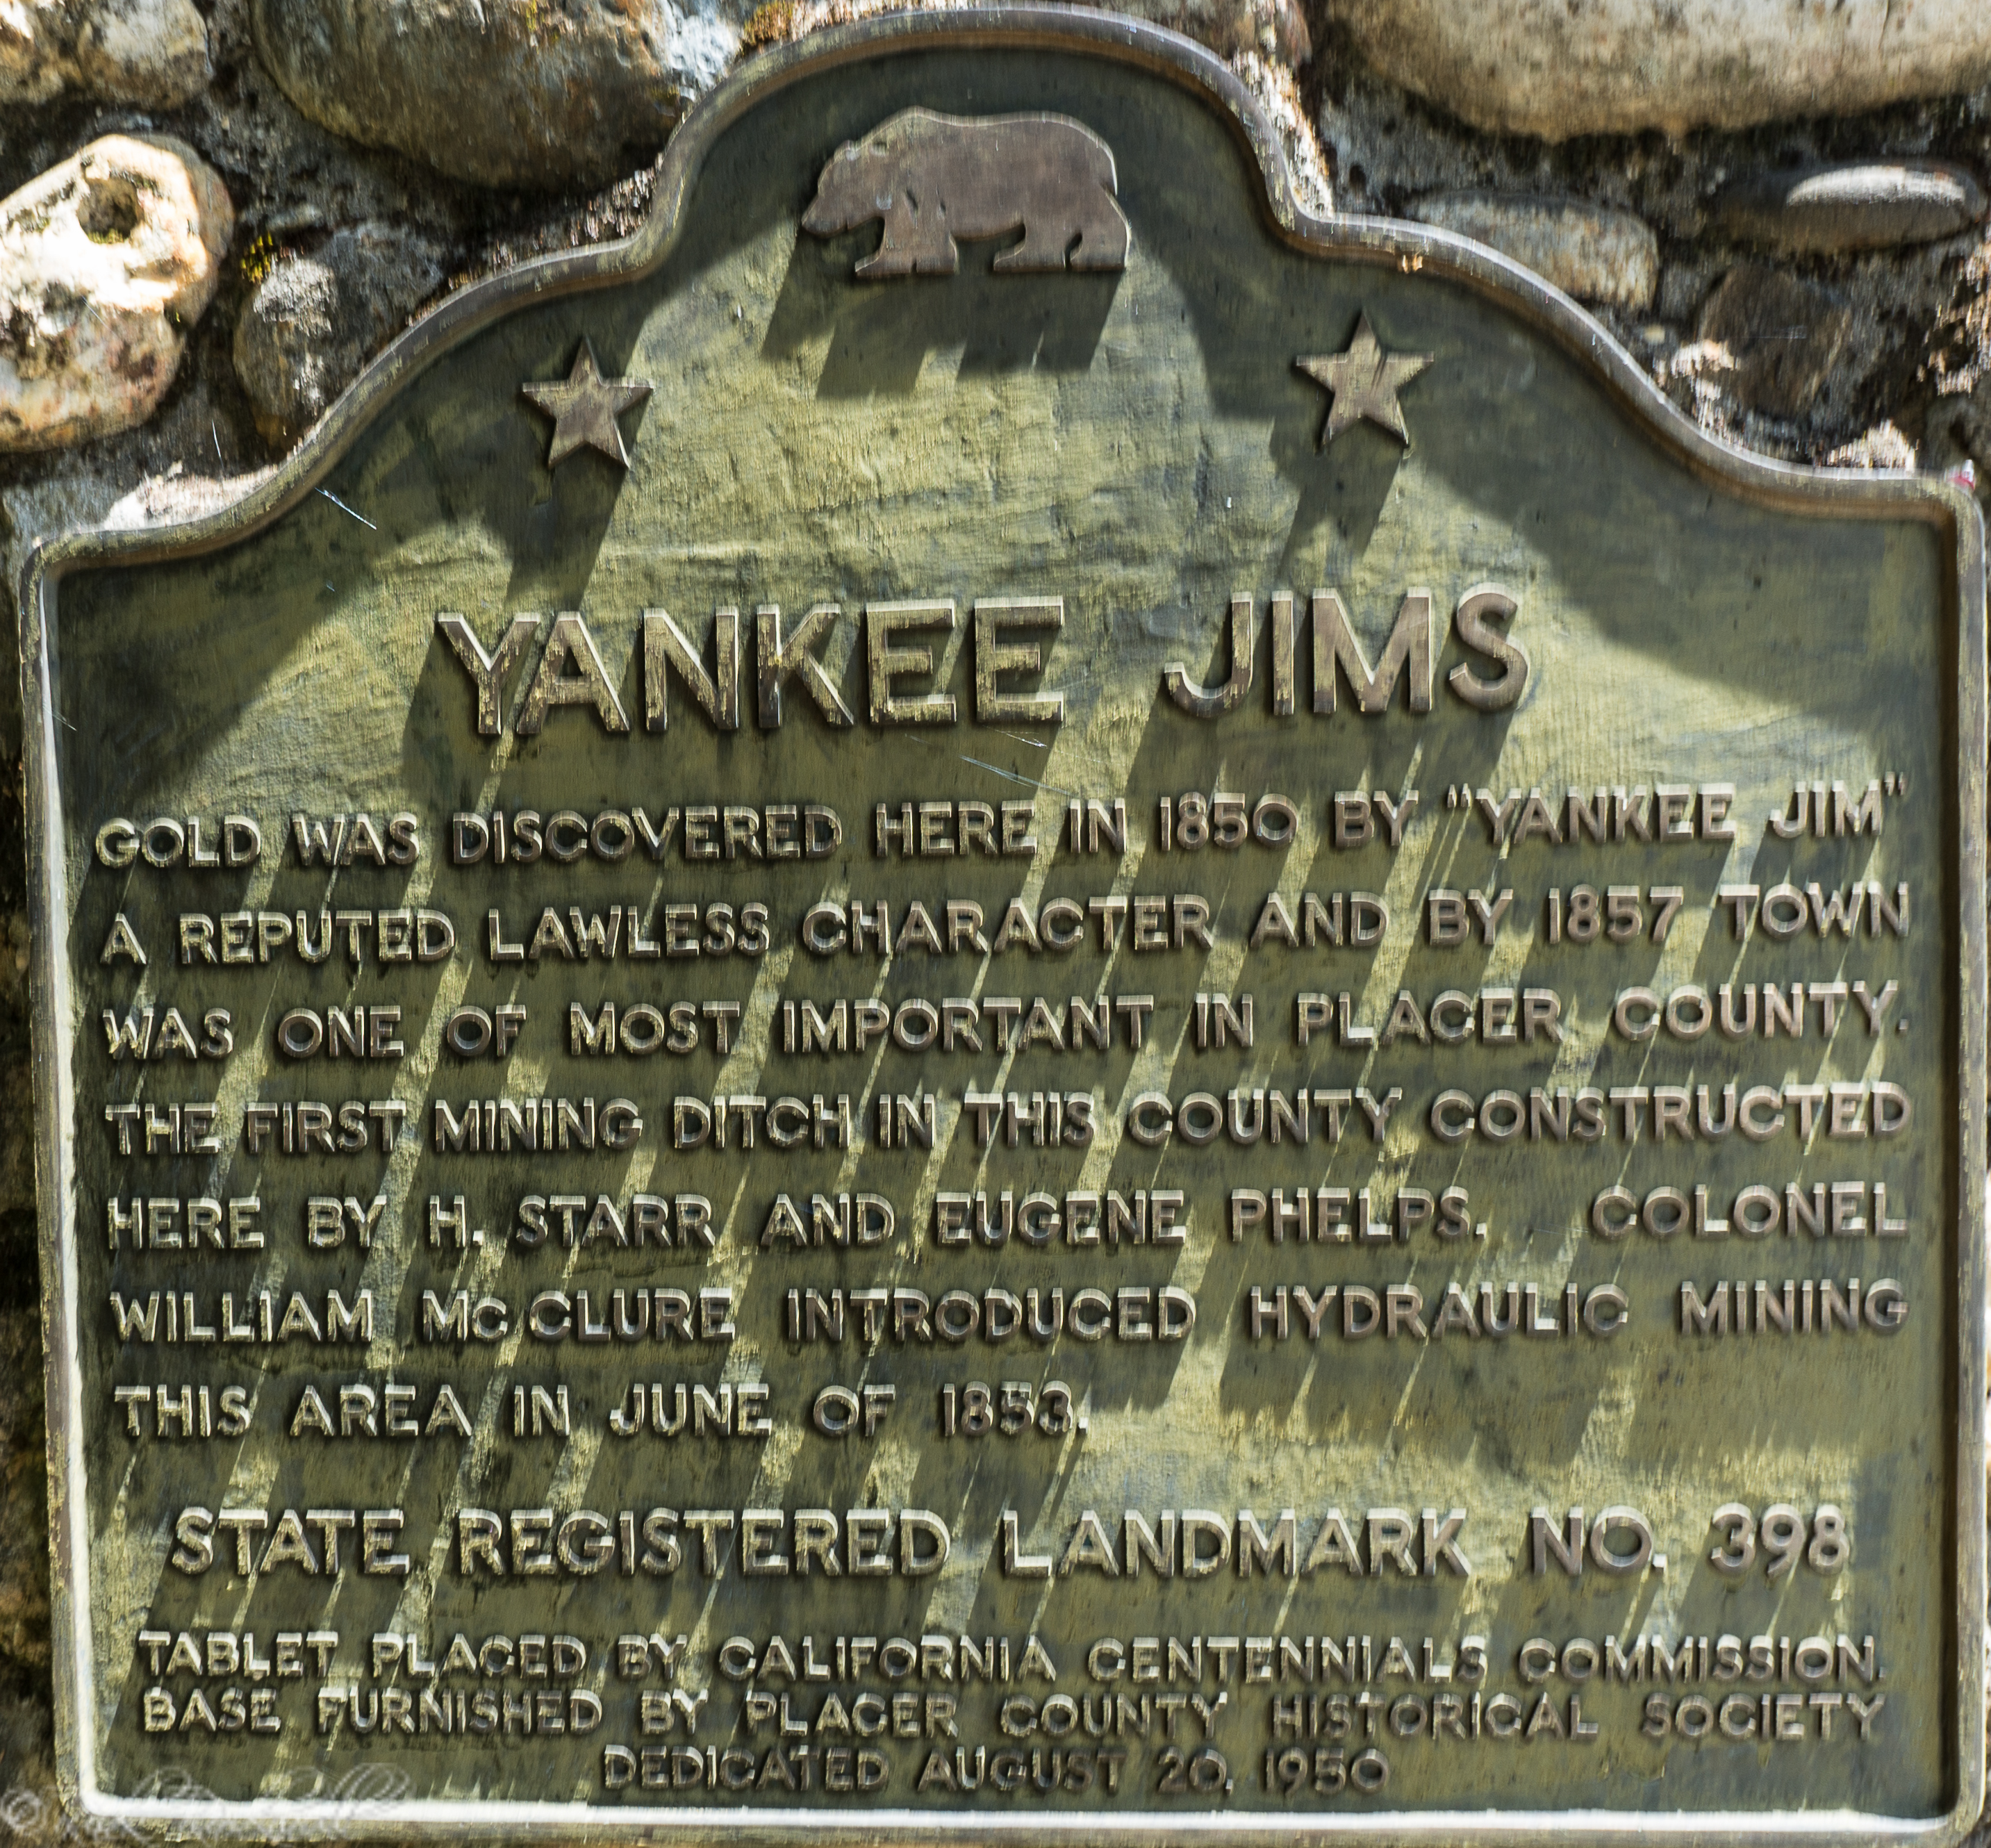 Photo of Yankee Jims: The legend of a bandit, the lore of a gold rush town and Folgers coffee